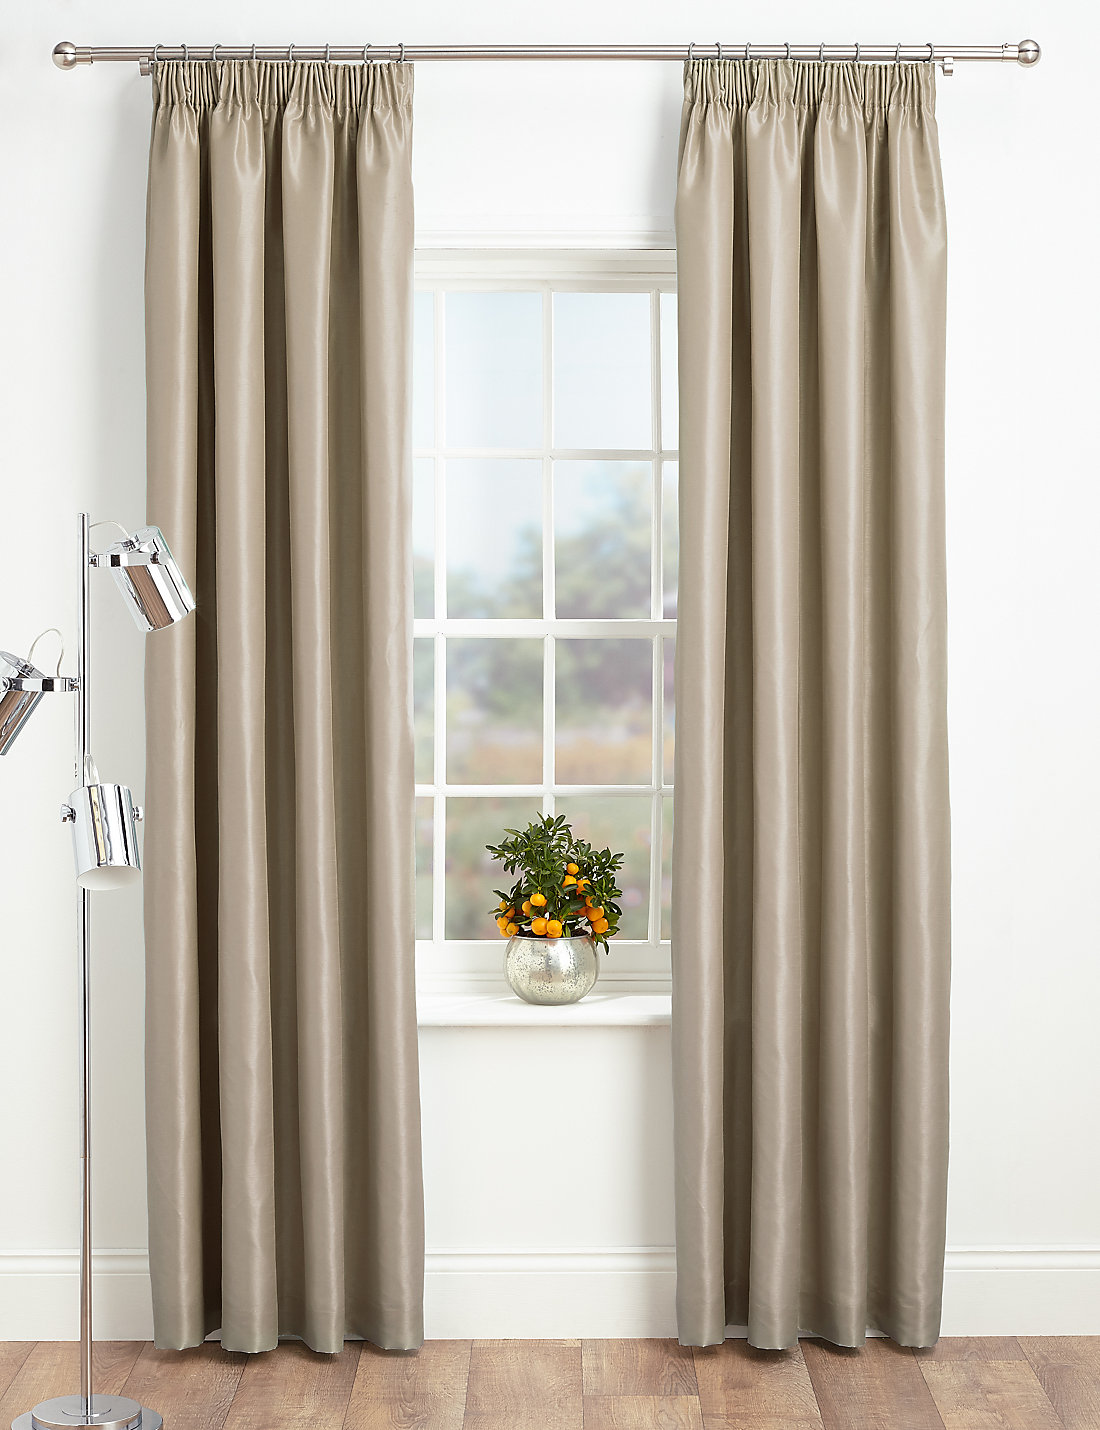 Marks And Spencer Ready Made Pencil Pleat Curtains Home Decorators Catalog Best Ideas of Home Decor and Design [homedecoratorscatalog.us]